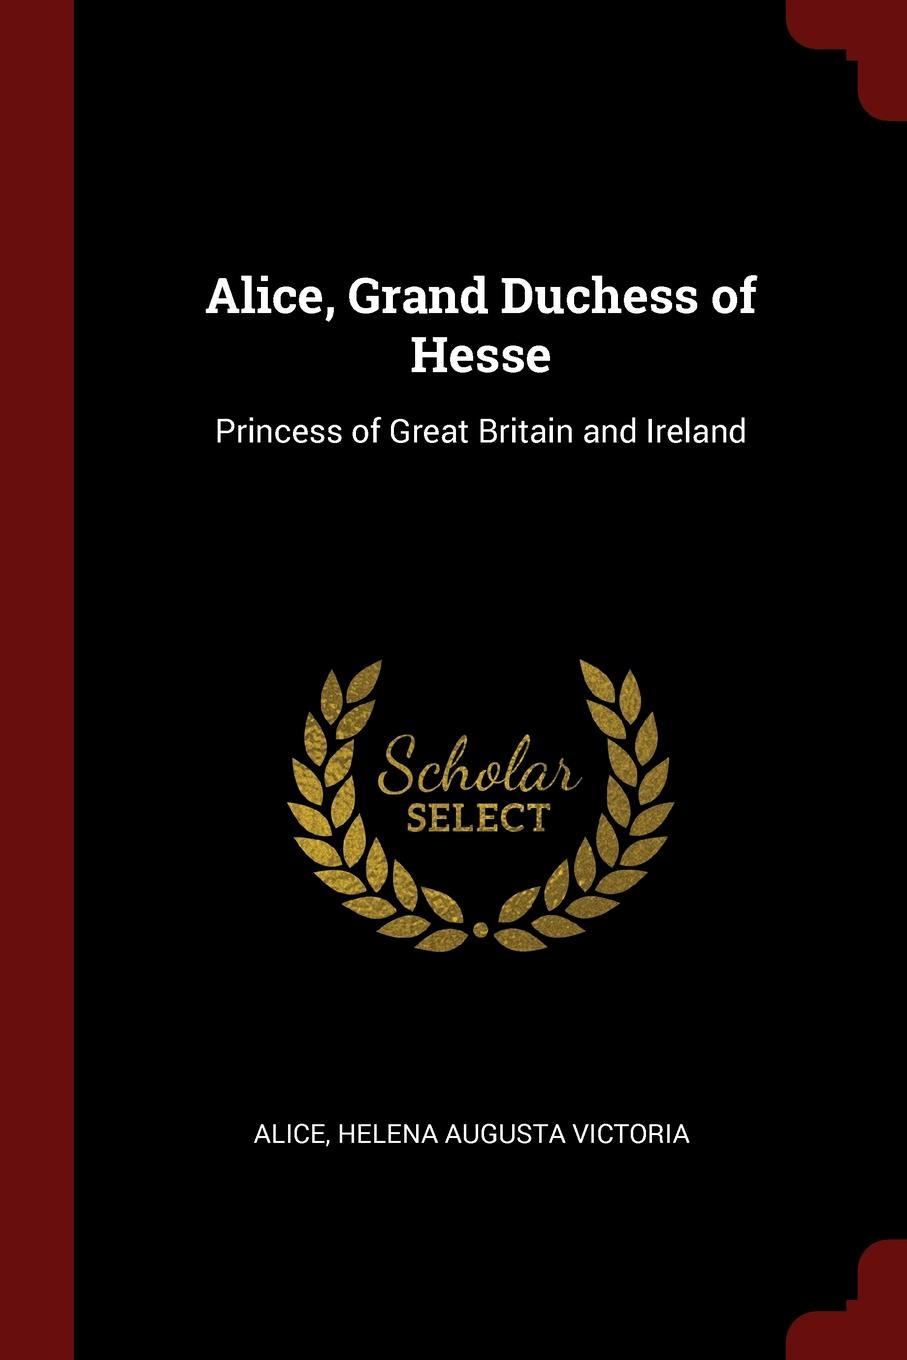 лучшая цена Alice, Helena Augusta Victoria Alice, Grand Duchess of Hesse. Princess of Great Britain and Ireland